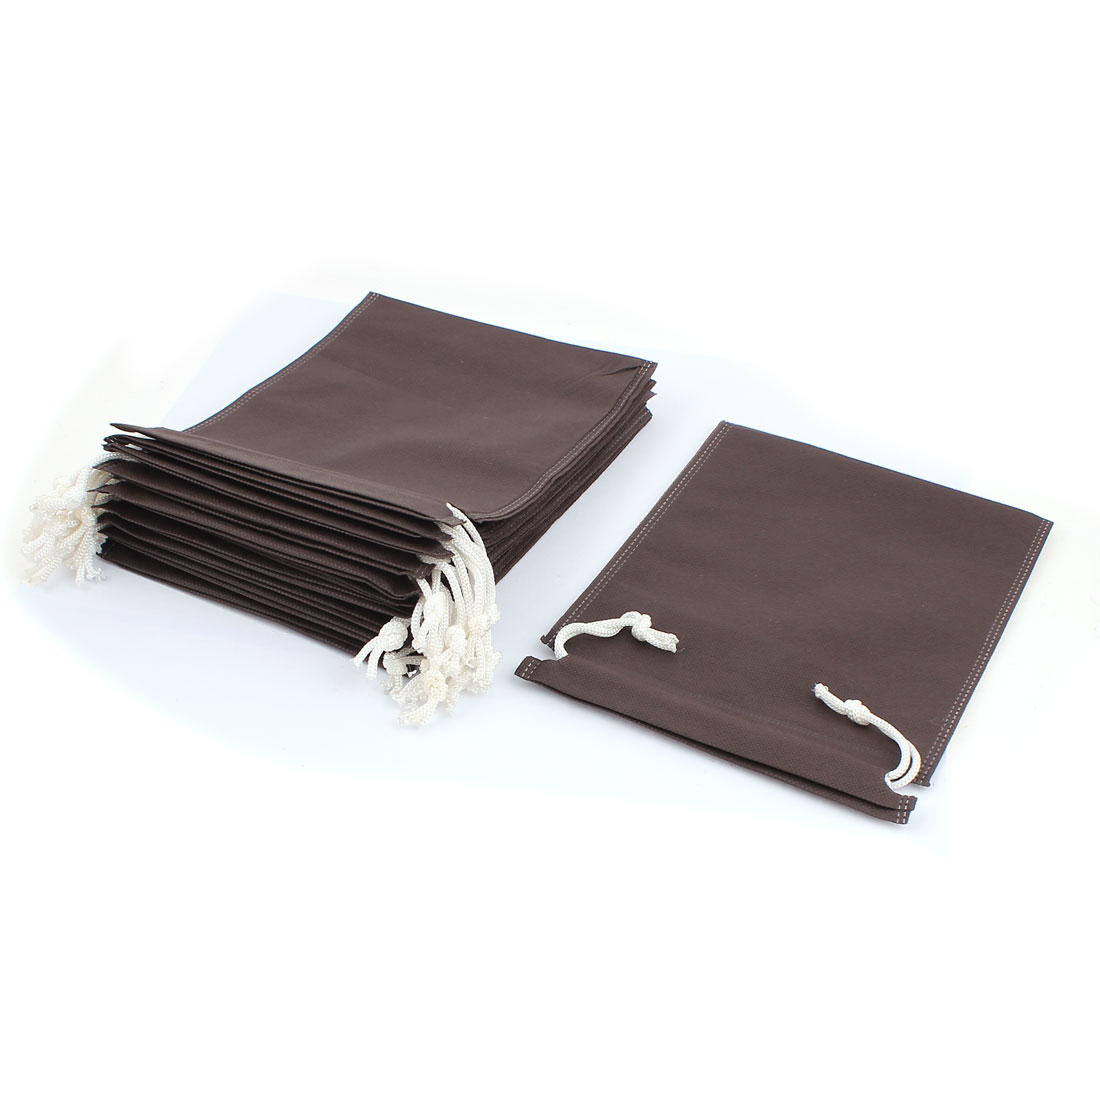 14pcs Coffe Color Non-woven Fabric Dust Cover Storage Drawstring Bag Pouch for Clothes Shoes